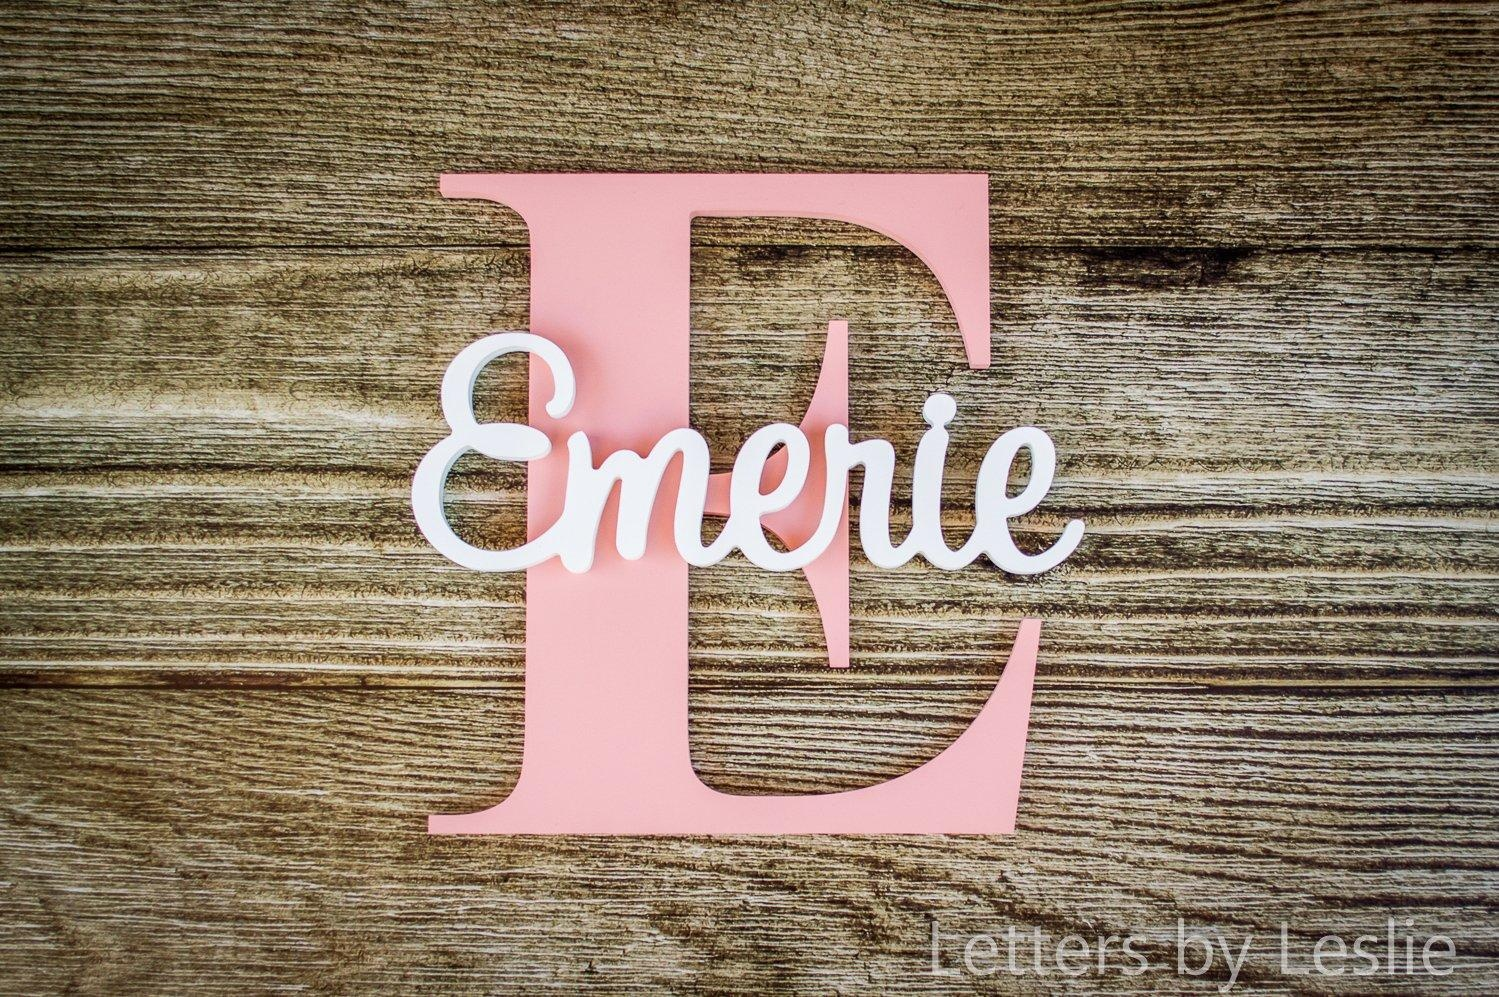 Avrylic Pvc Amp Wooden3d Lettering Decor My Ehome Decor